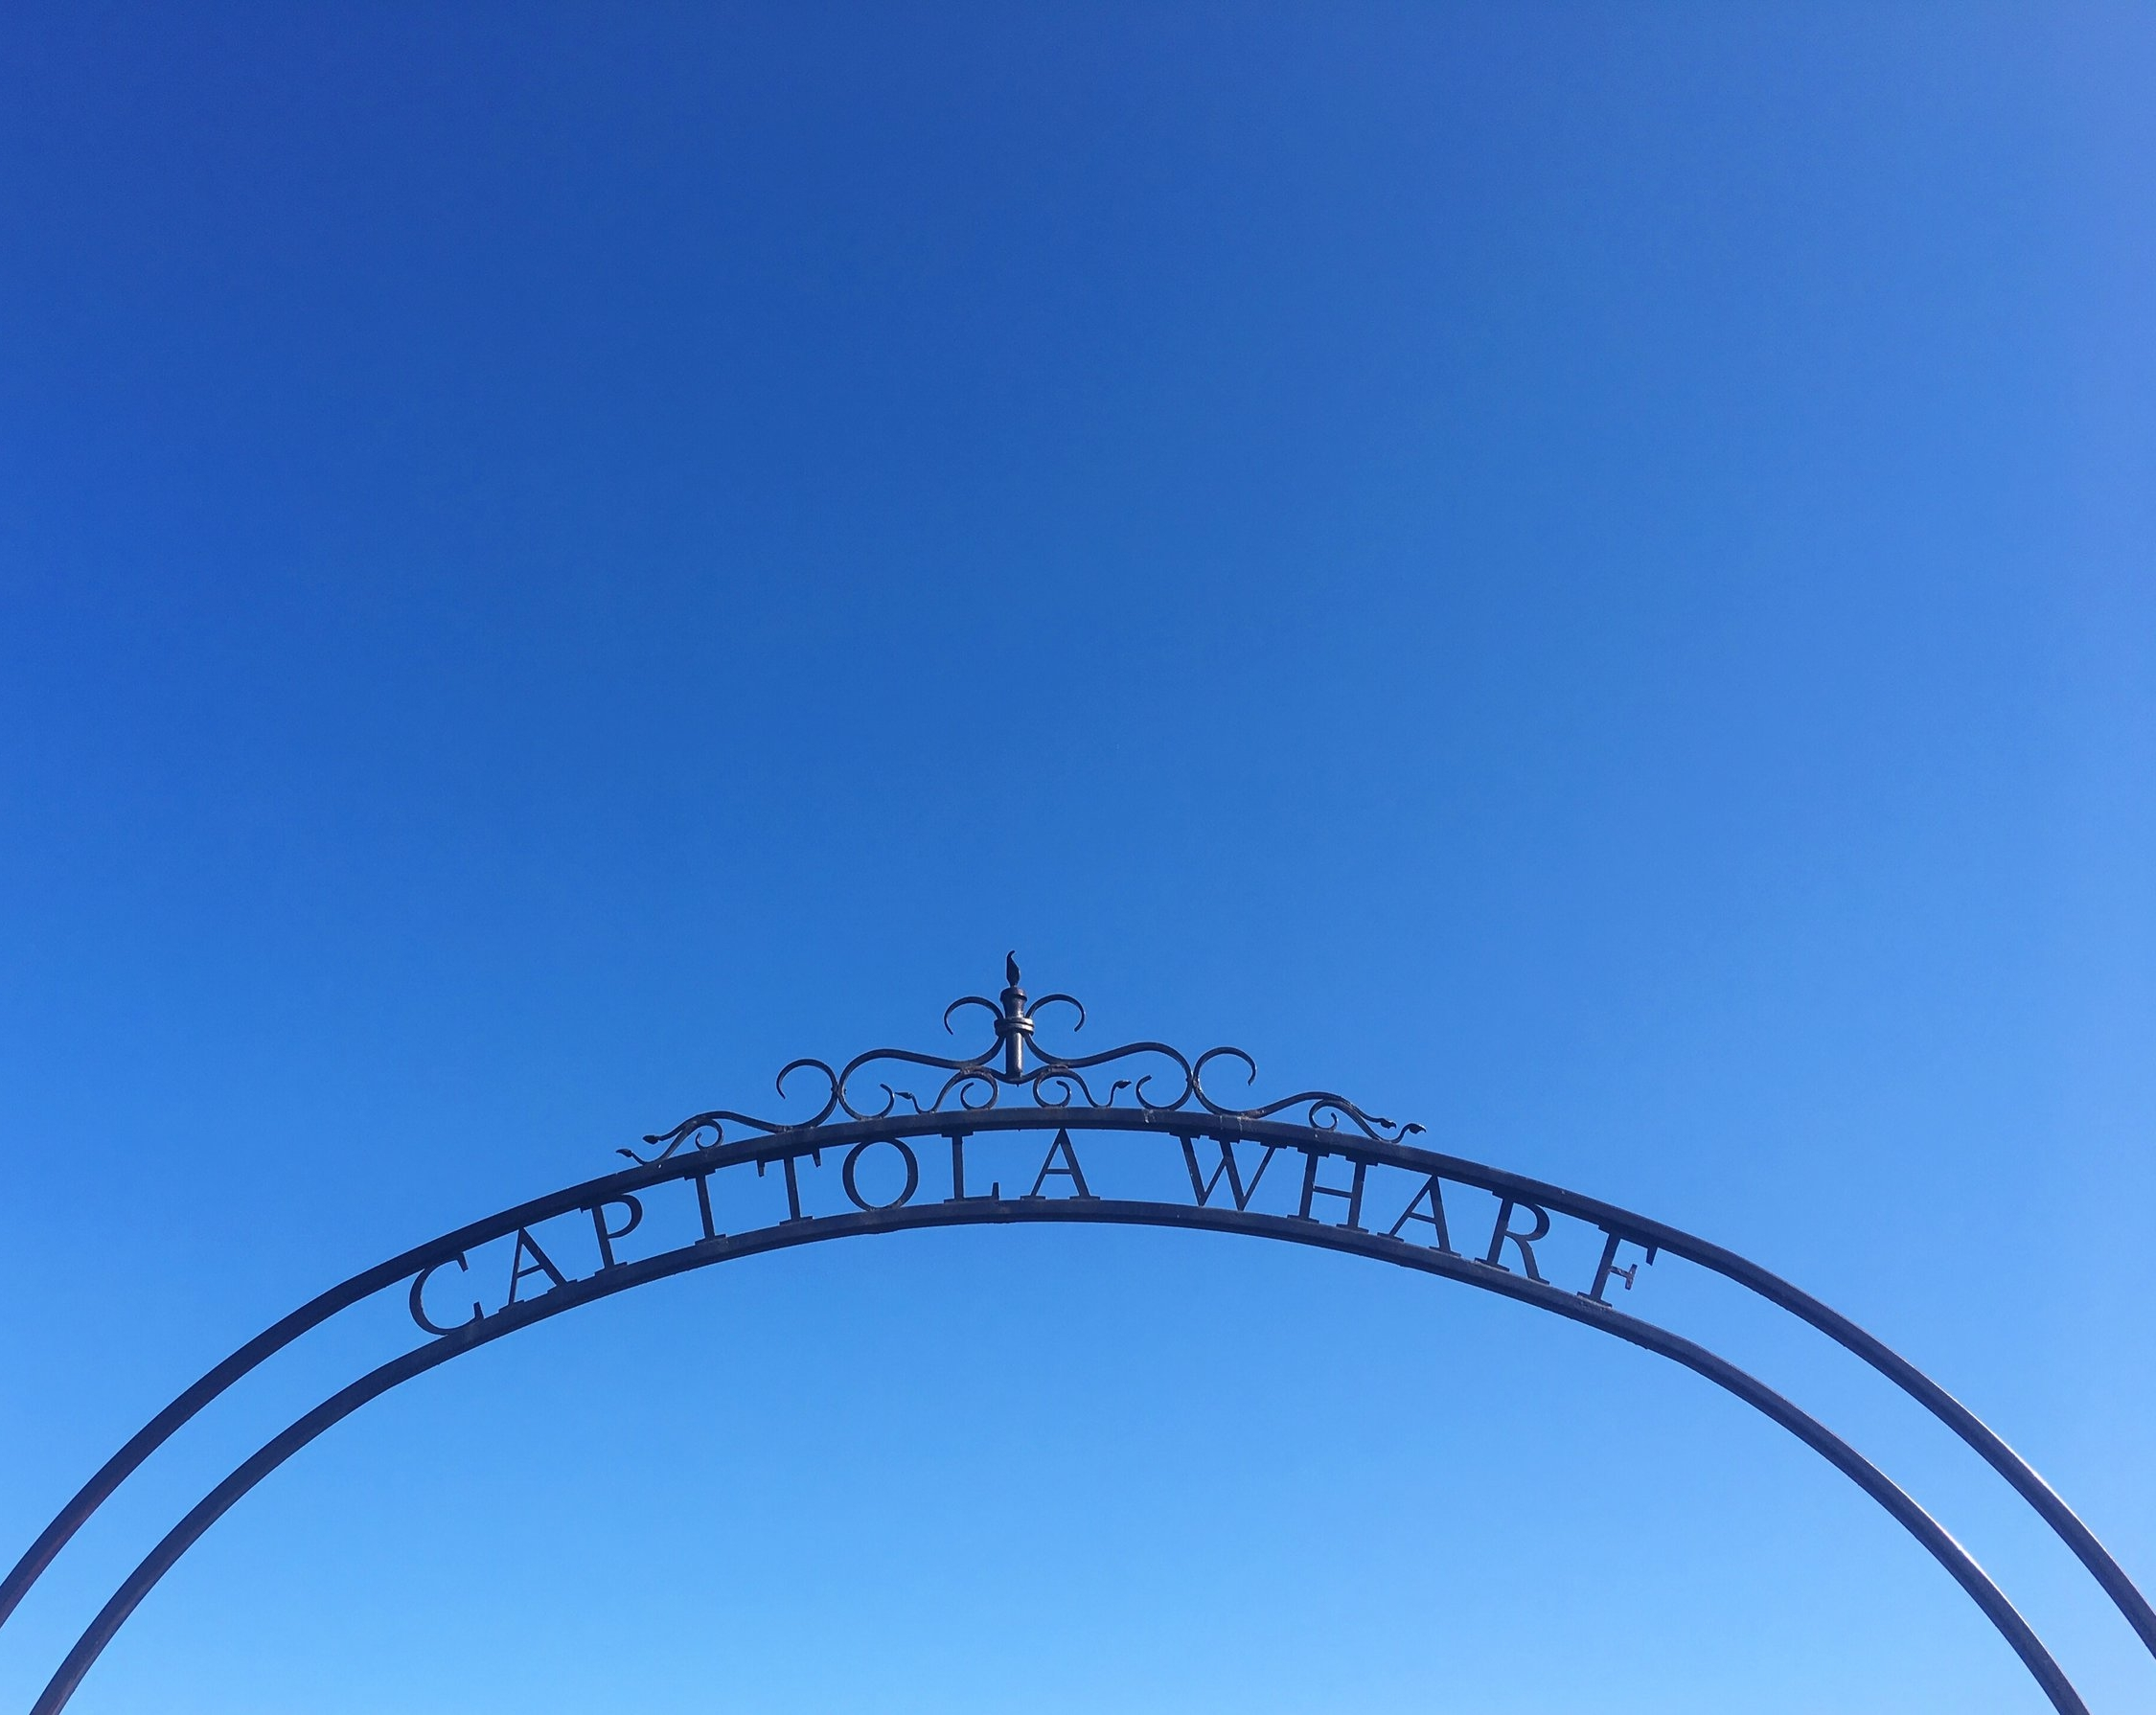 Capitola Wharf Arch and Blue Skies.